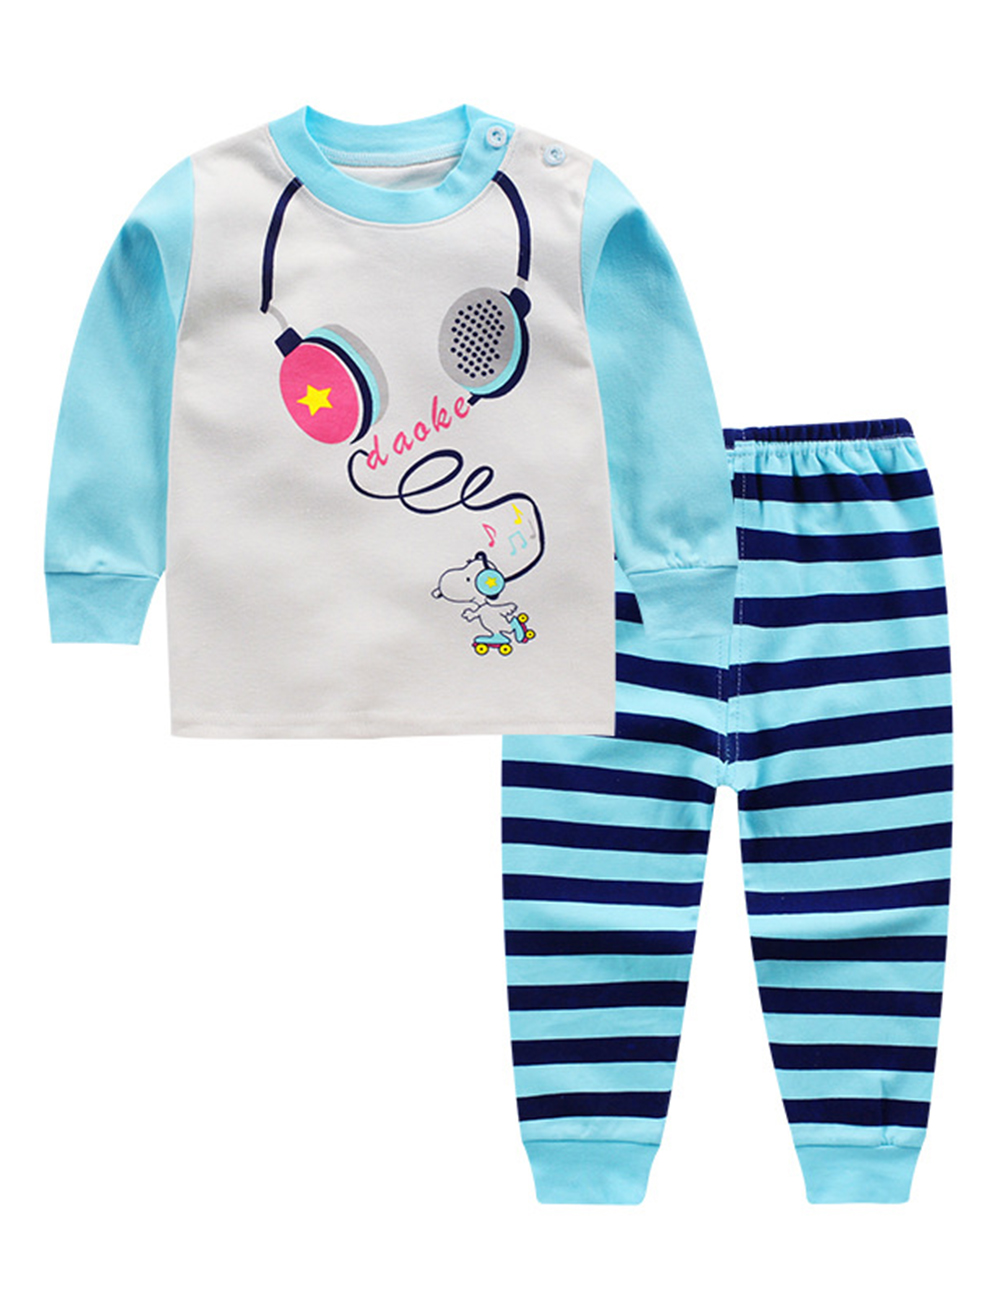 Baby's Kids Cotton Underwear Home Suit Cartoon Clothing Two Pieces Pajamas Set A music headphones_90/60